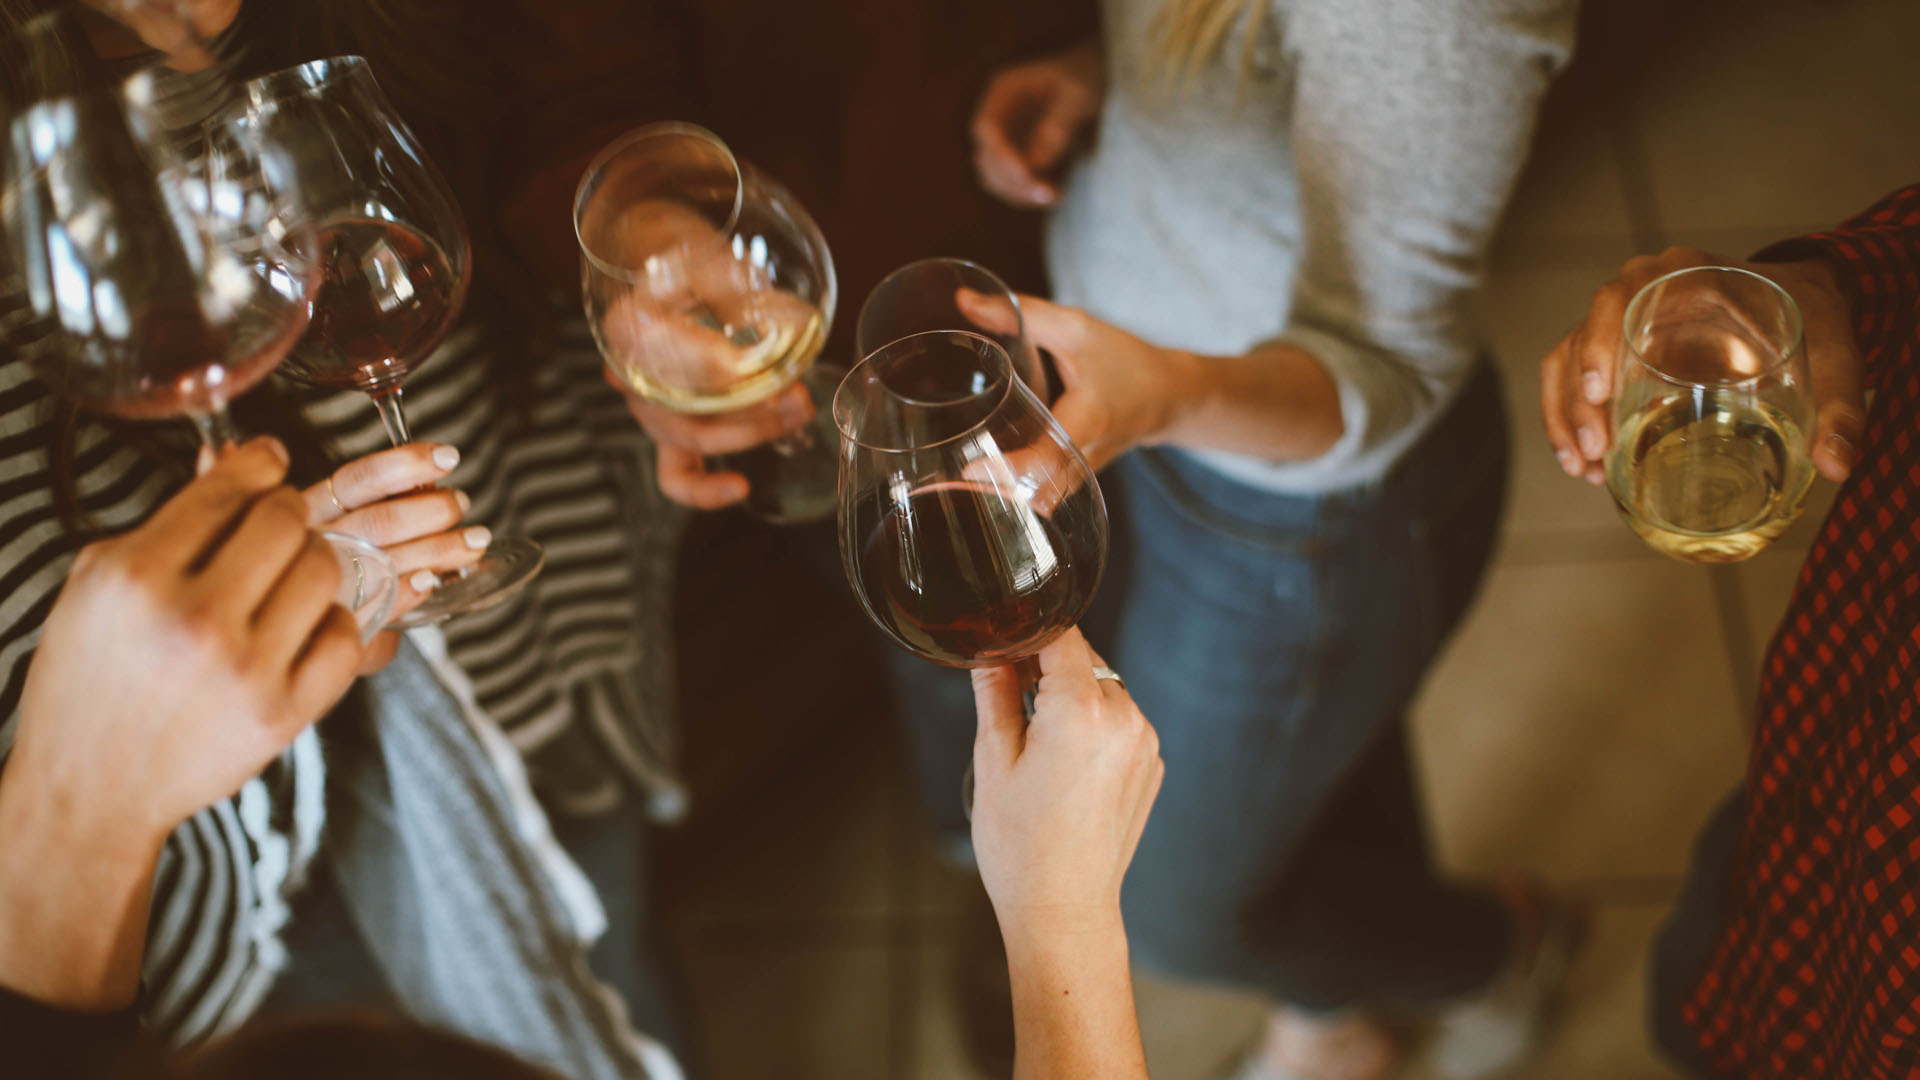 Group of people toasting with wine glasses